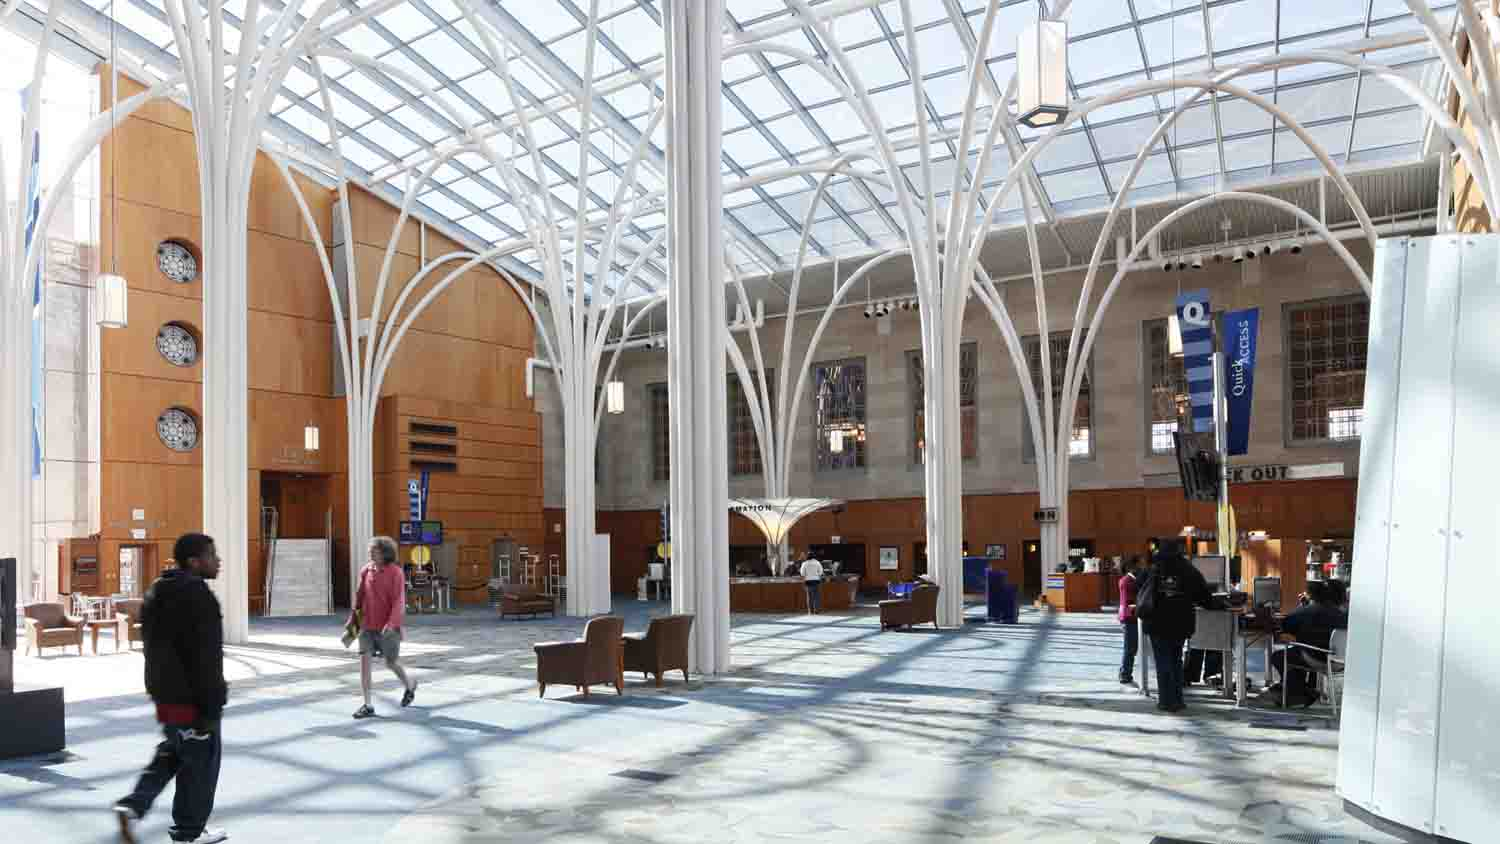 Indianapolis Public Library - Central Library 2